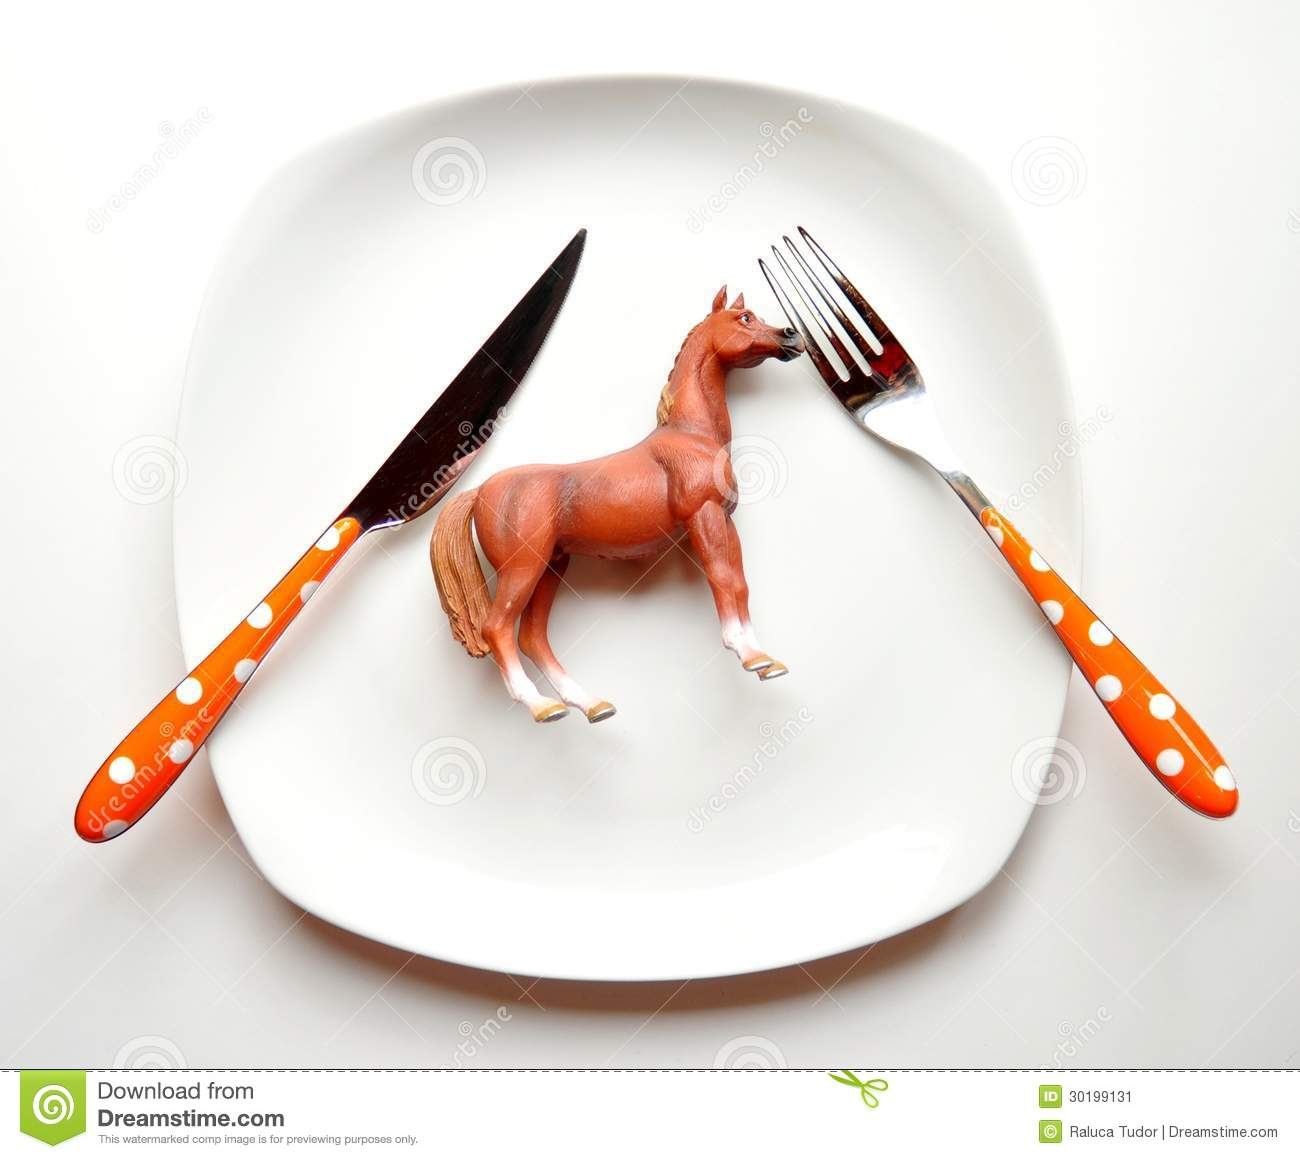 Stock Image Eating Horse Meat Concept European Scandal Horse Meat Beef Meat Horse Toy White Plate Fork Knife Image30199131 on animal farm landscape